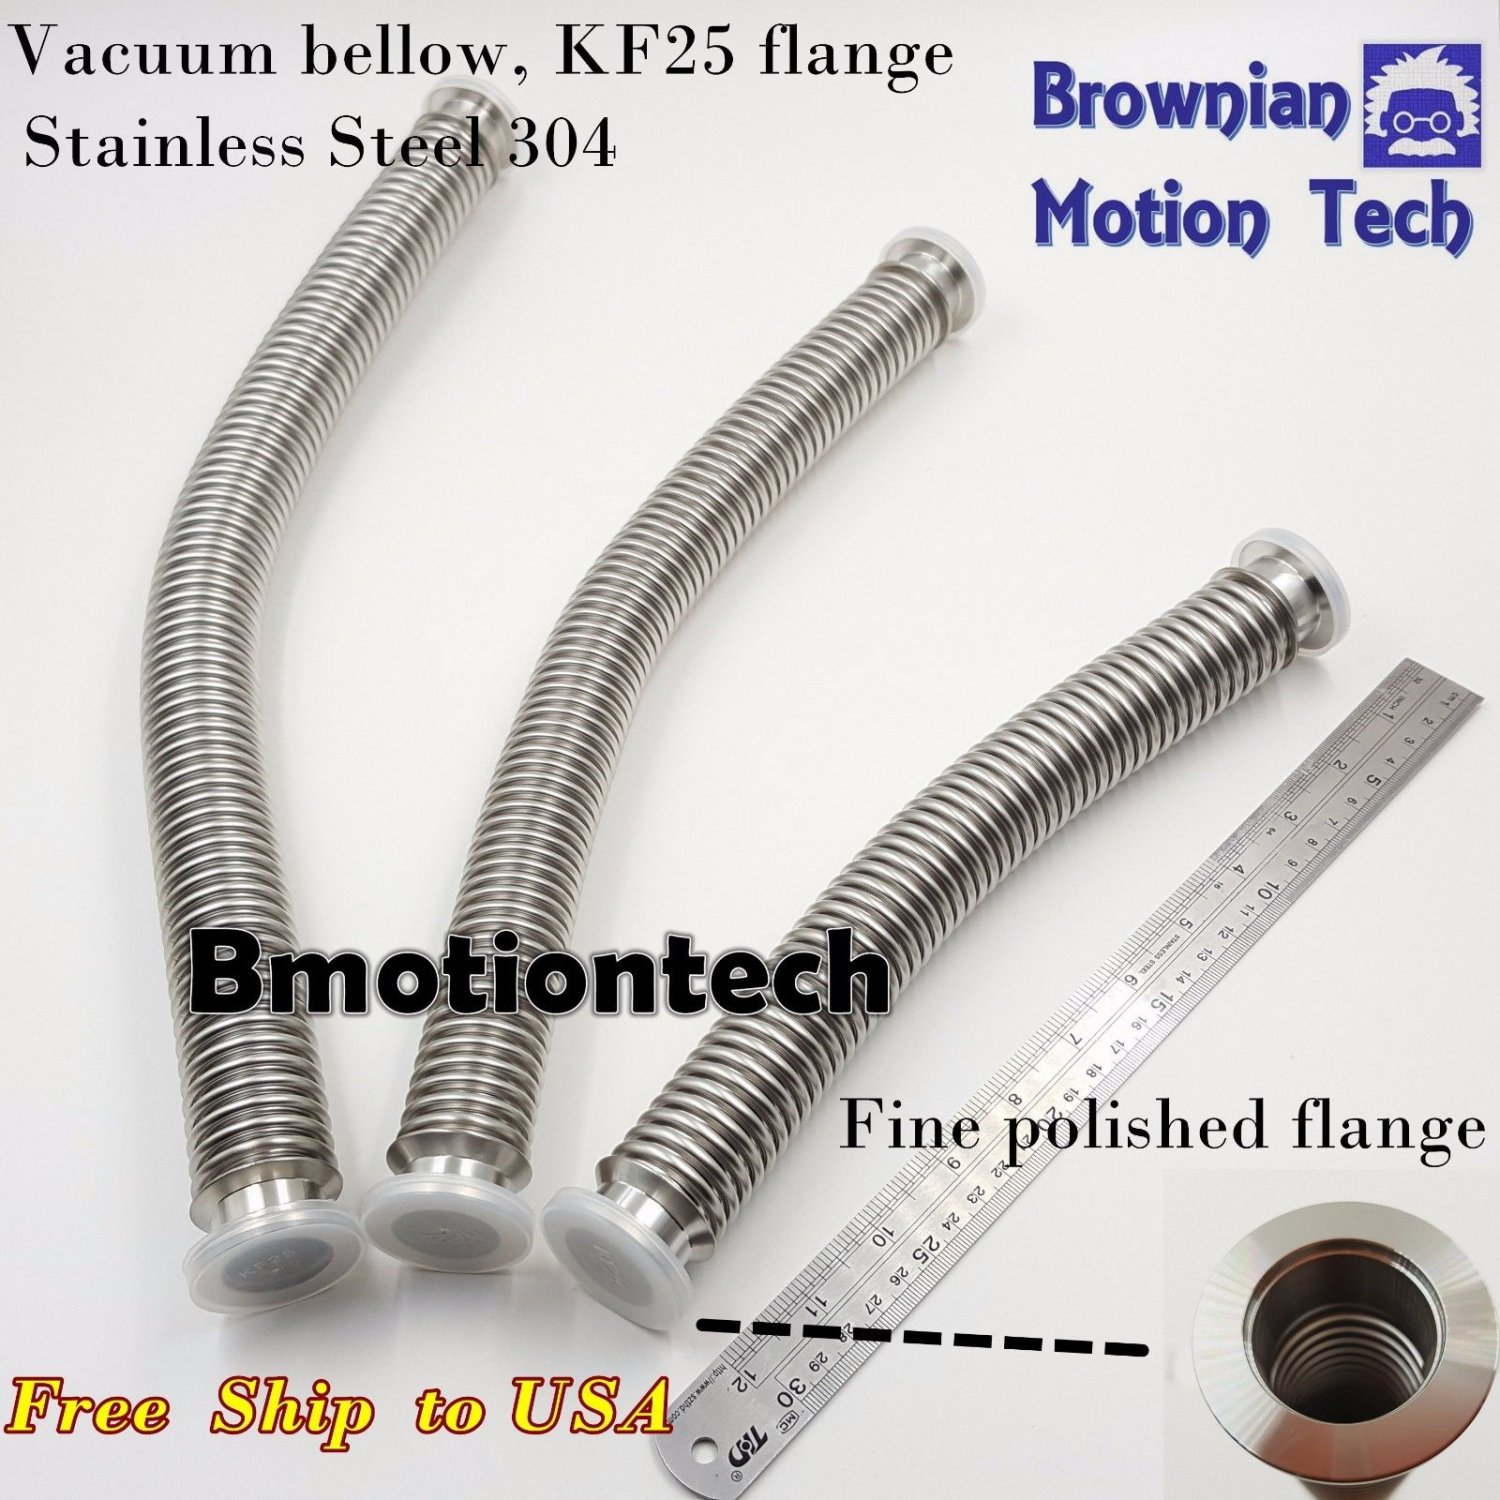 KF25 flange Stainless steel 304 vacuum flexible bellow hose wall thk = 0.2mm LNG